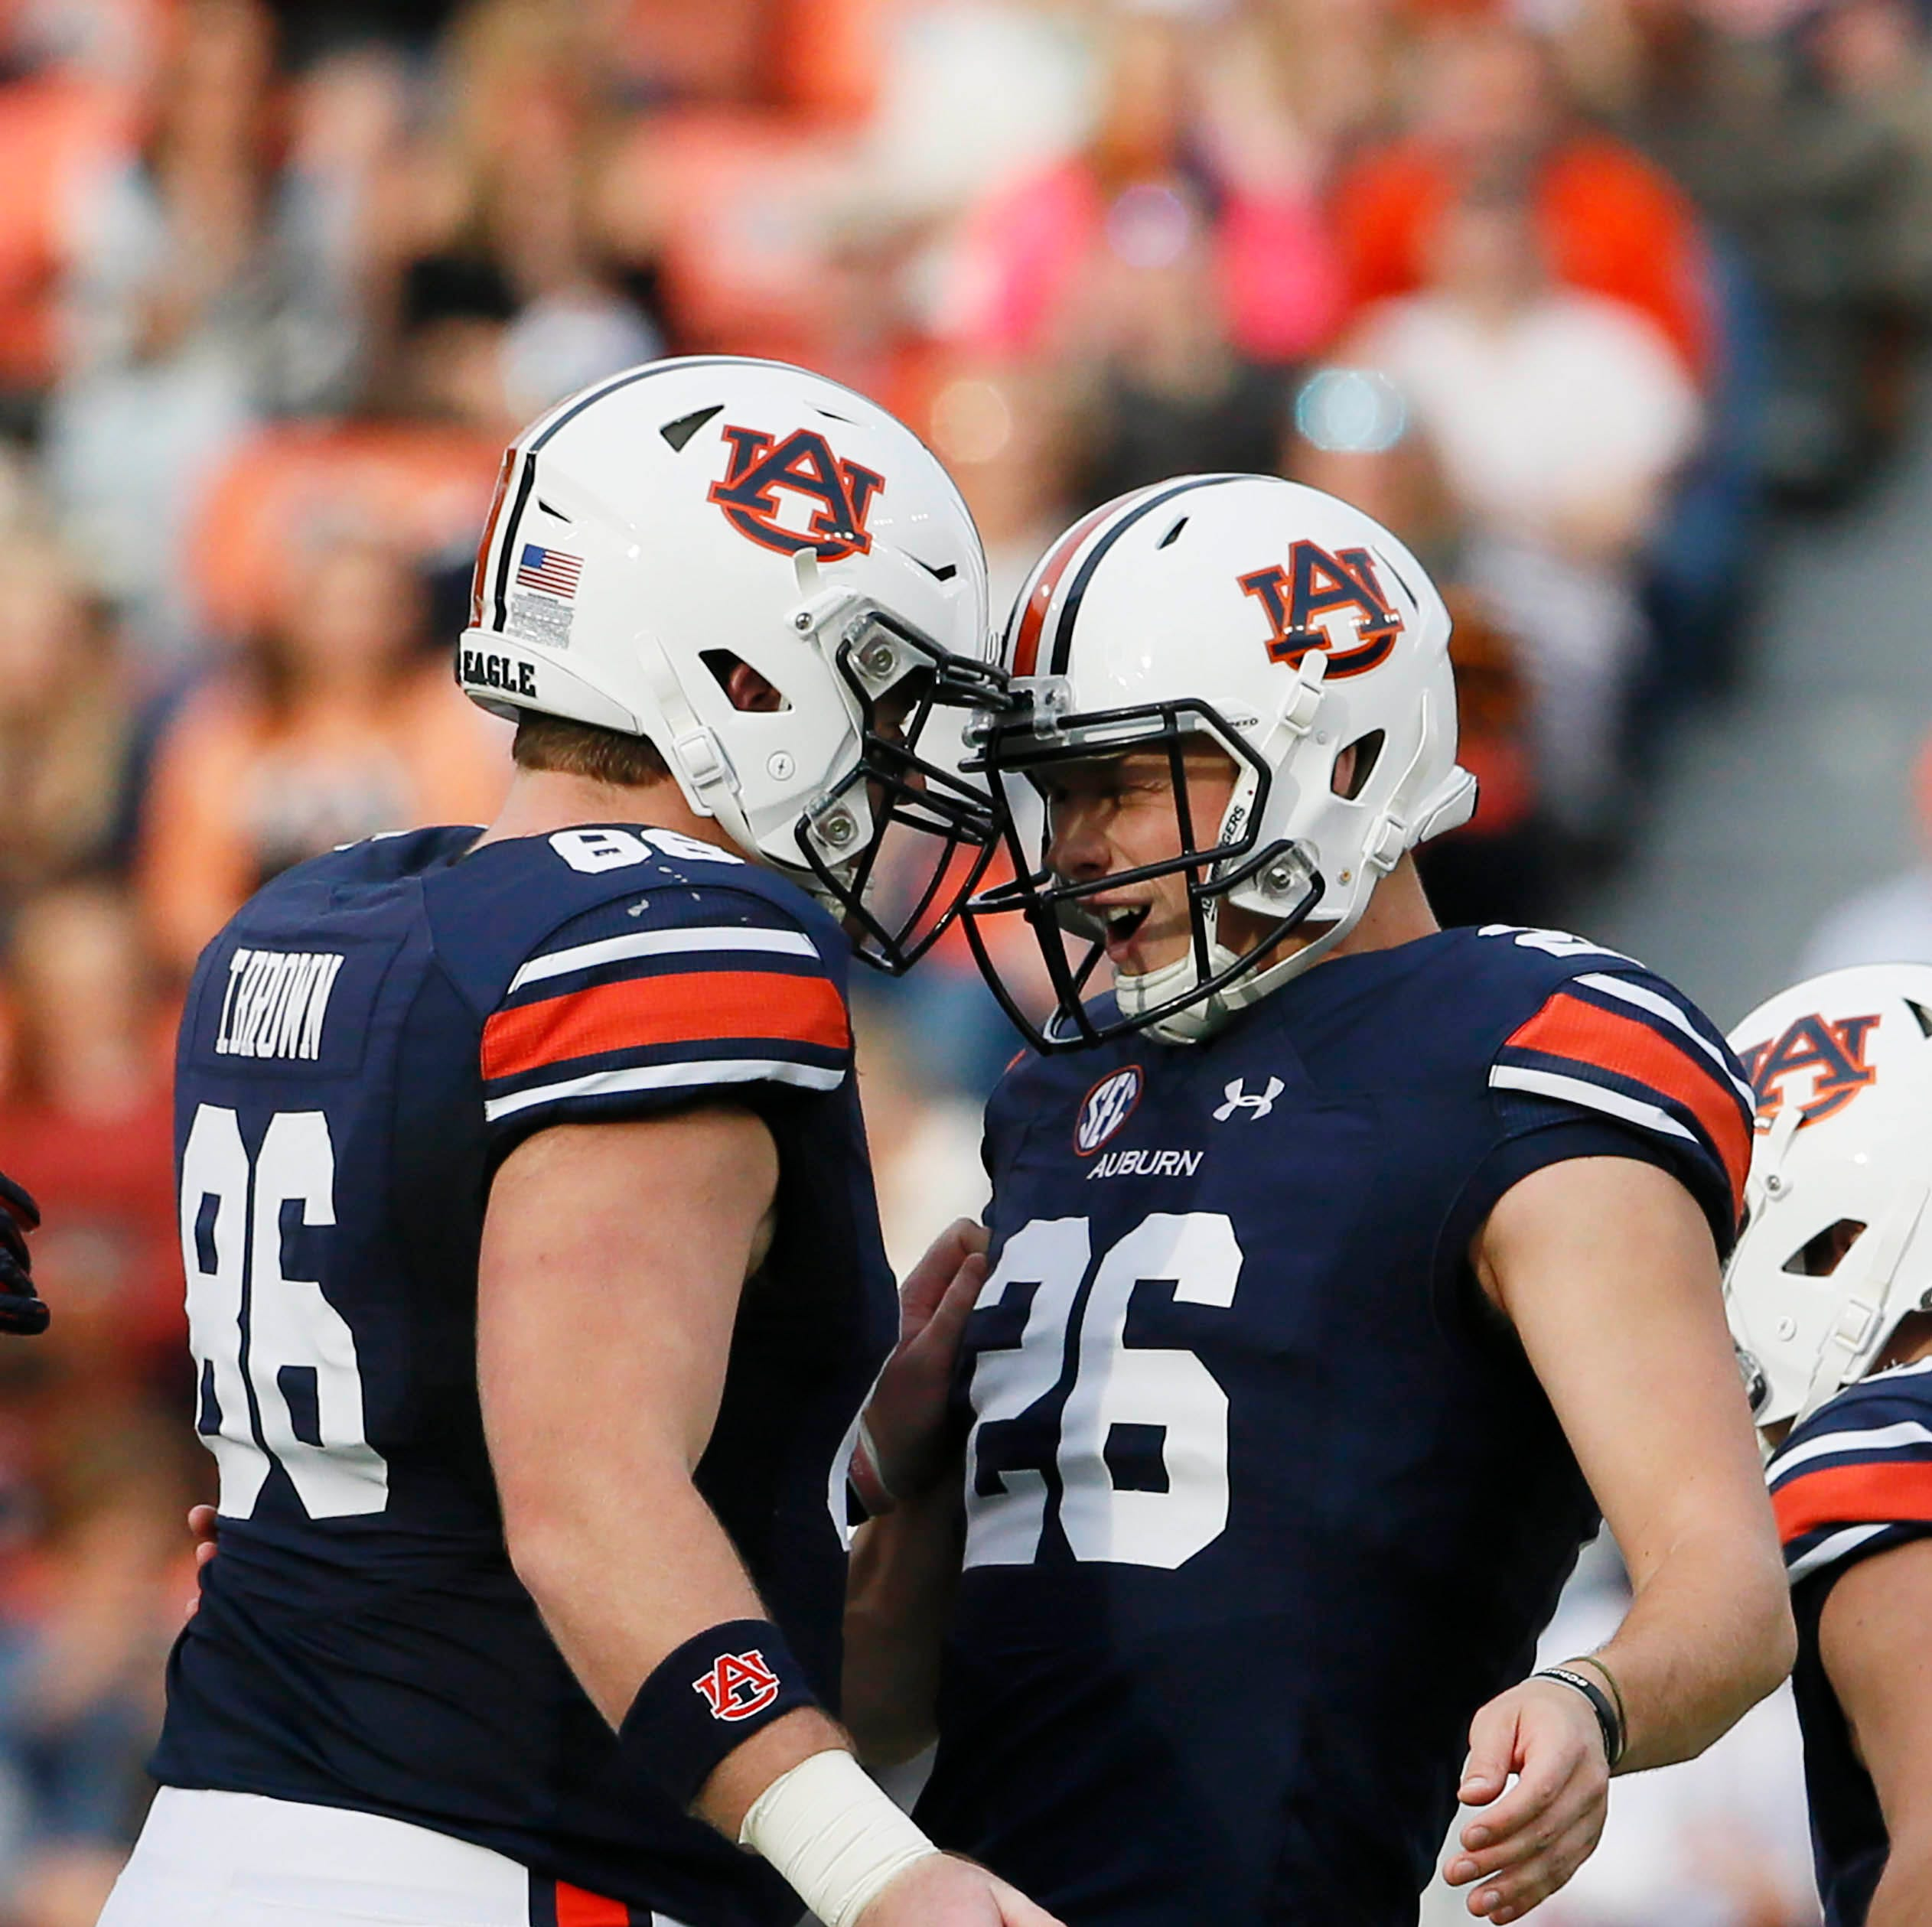 Auburn's domination of Liberty makes Alabama game look more interesting